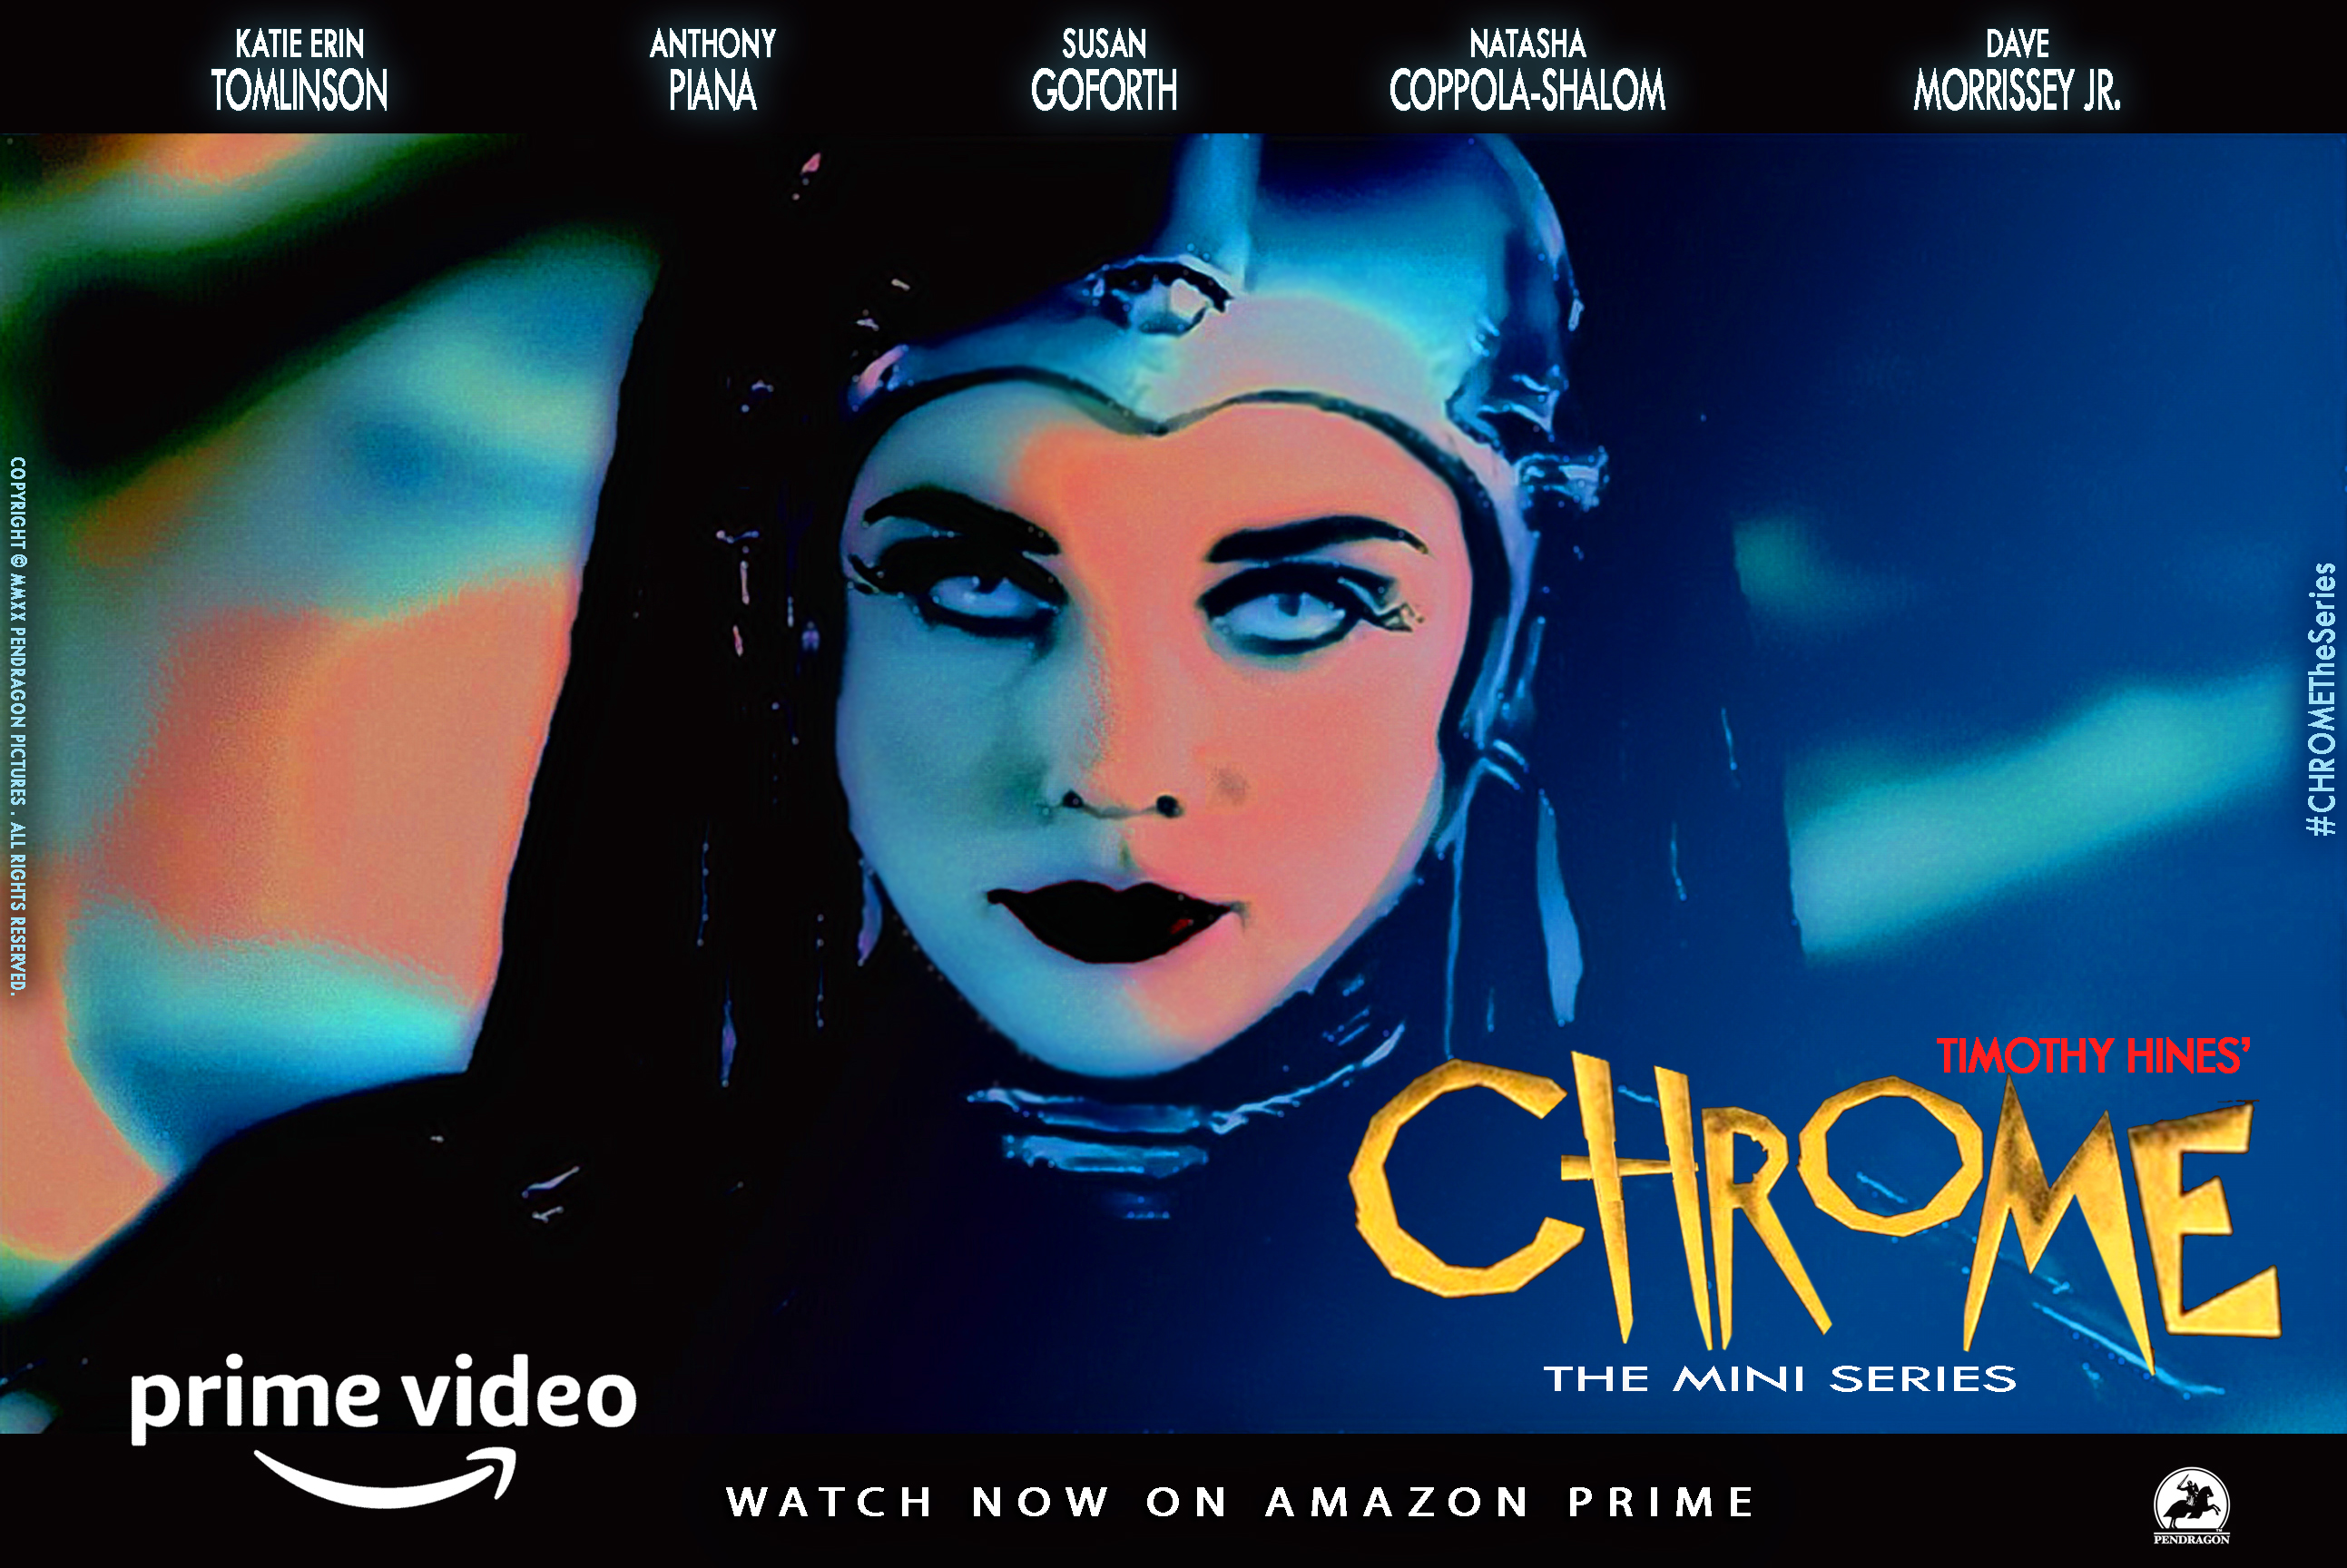 Chrome The Series Smash Debut on Prime with Audience of 150 Million Viewers